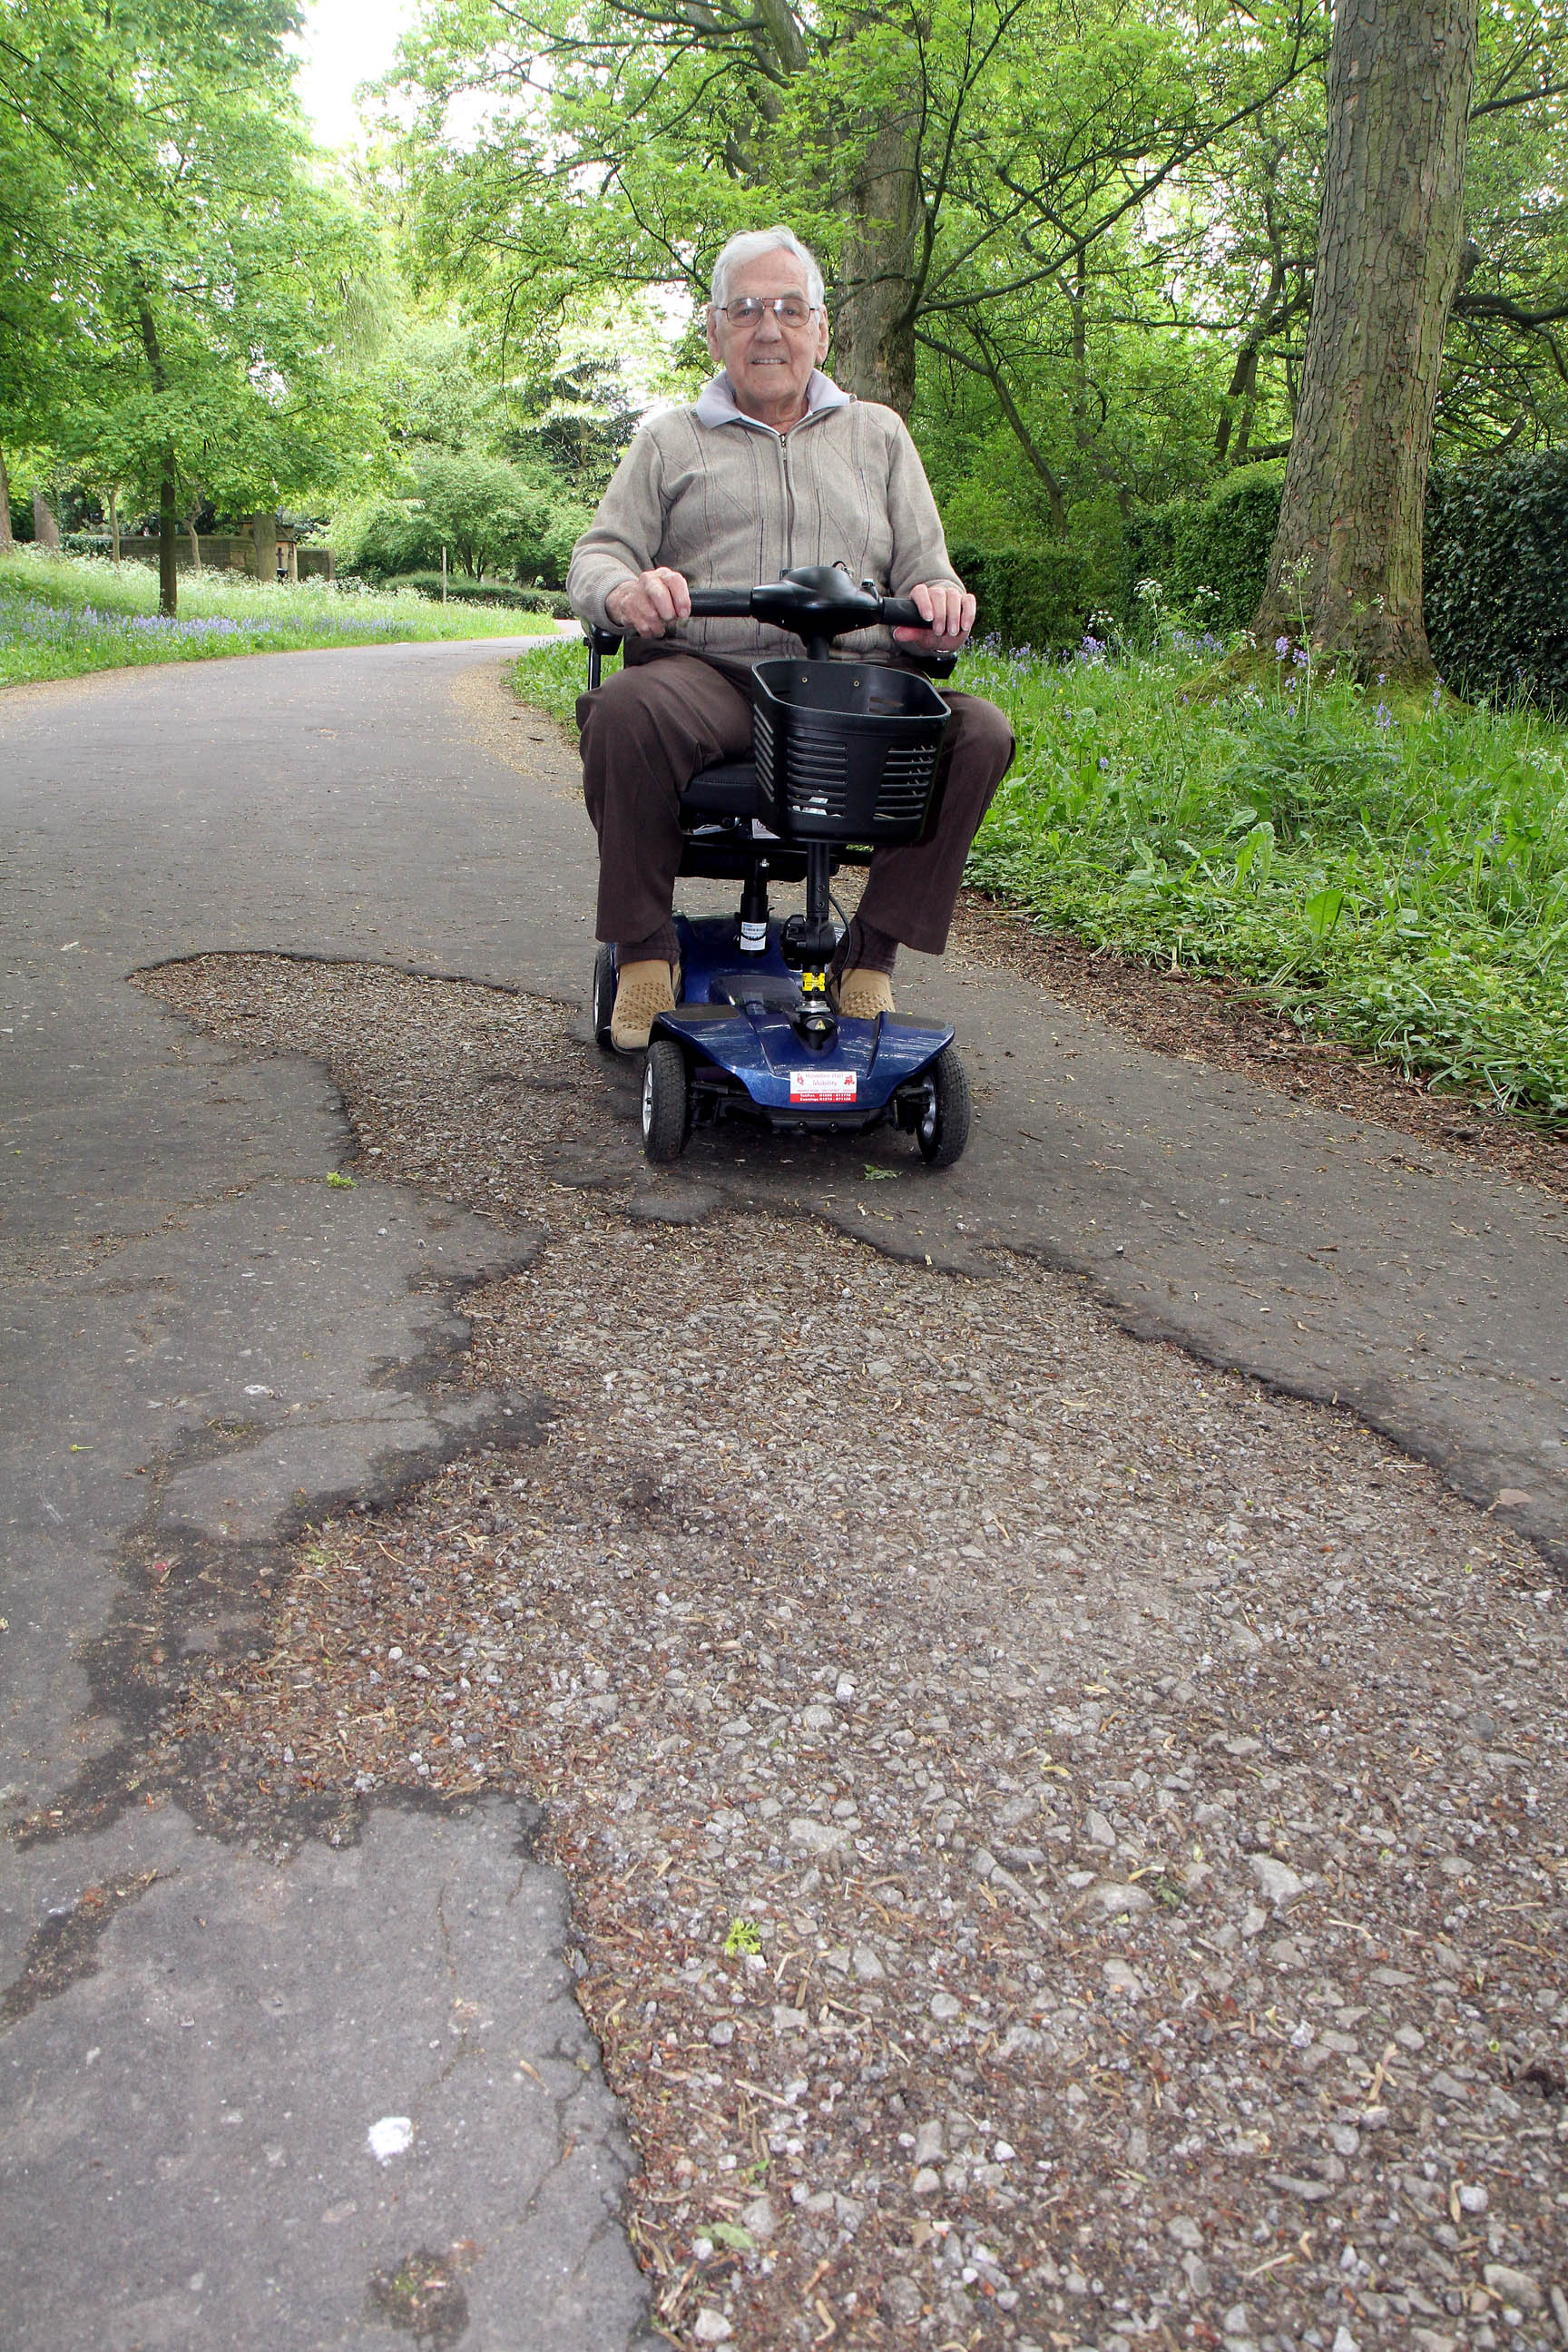 Harry Beevers says the 'shocking' state of footpaths in Cliffe Castle Park is preventing him and his wife visiting